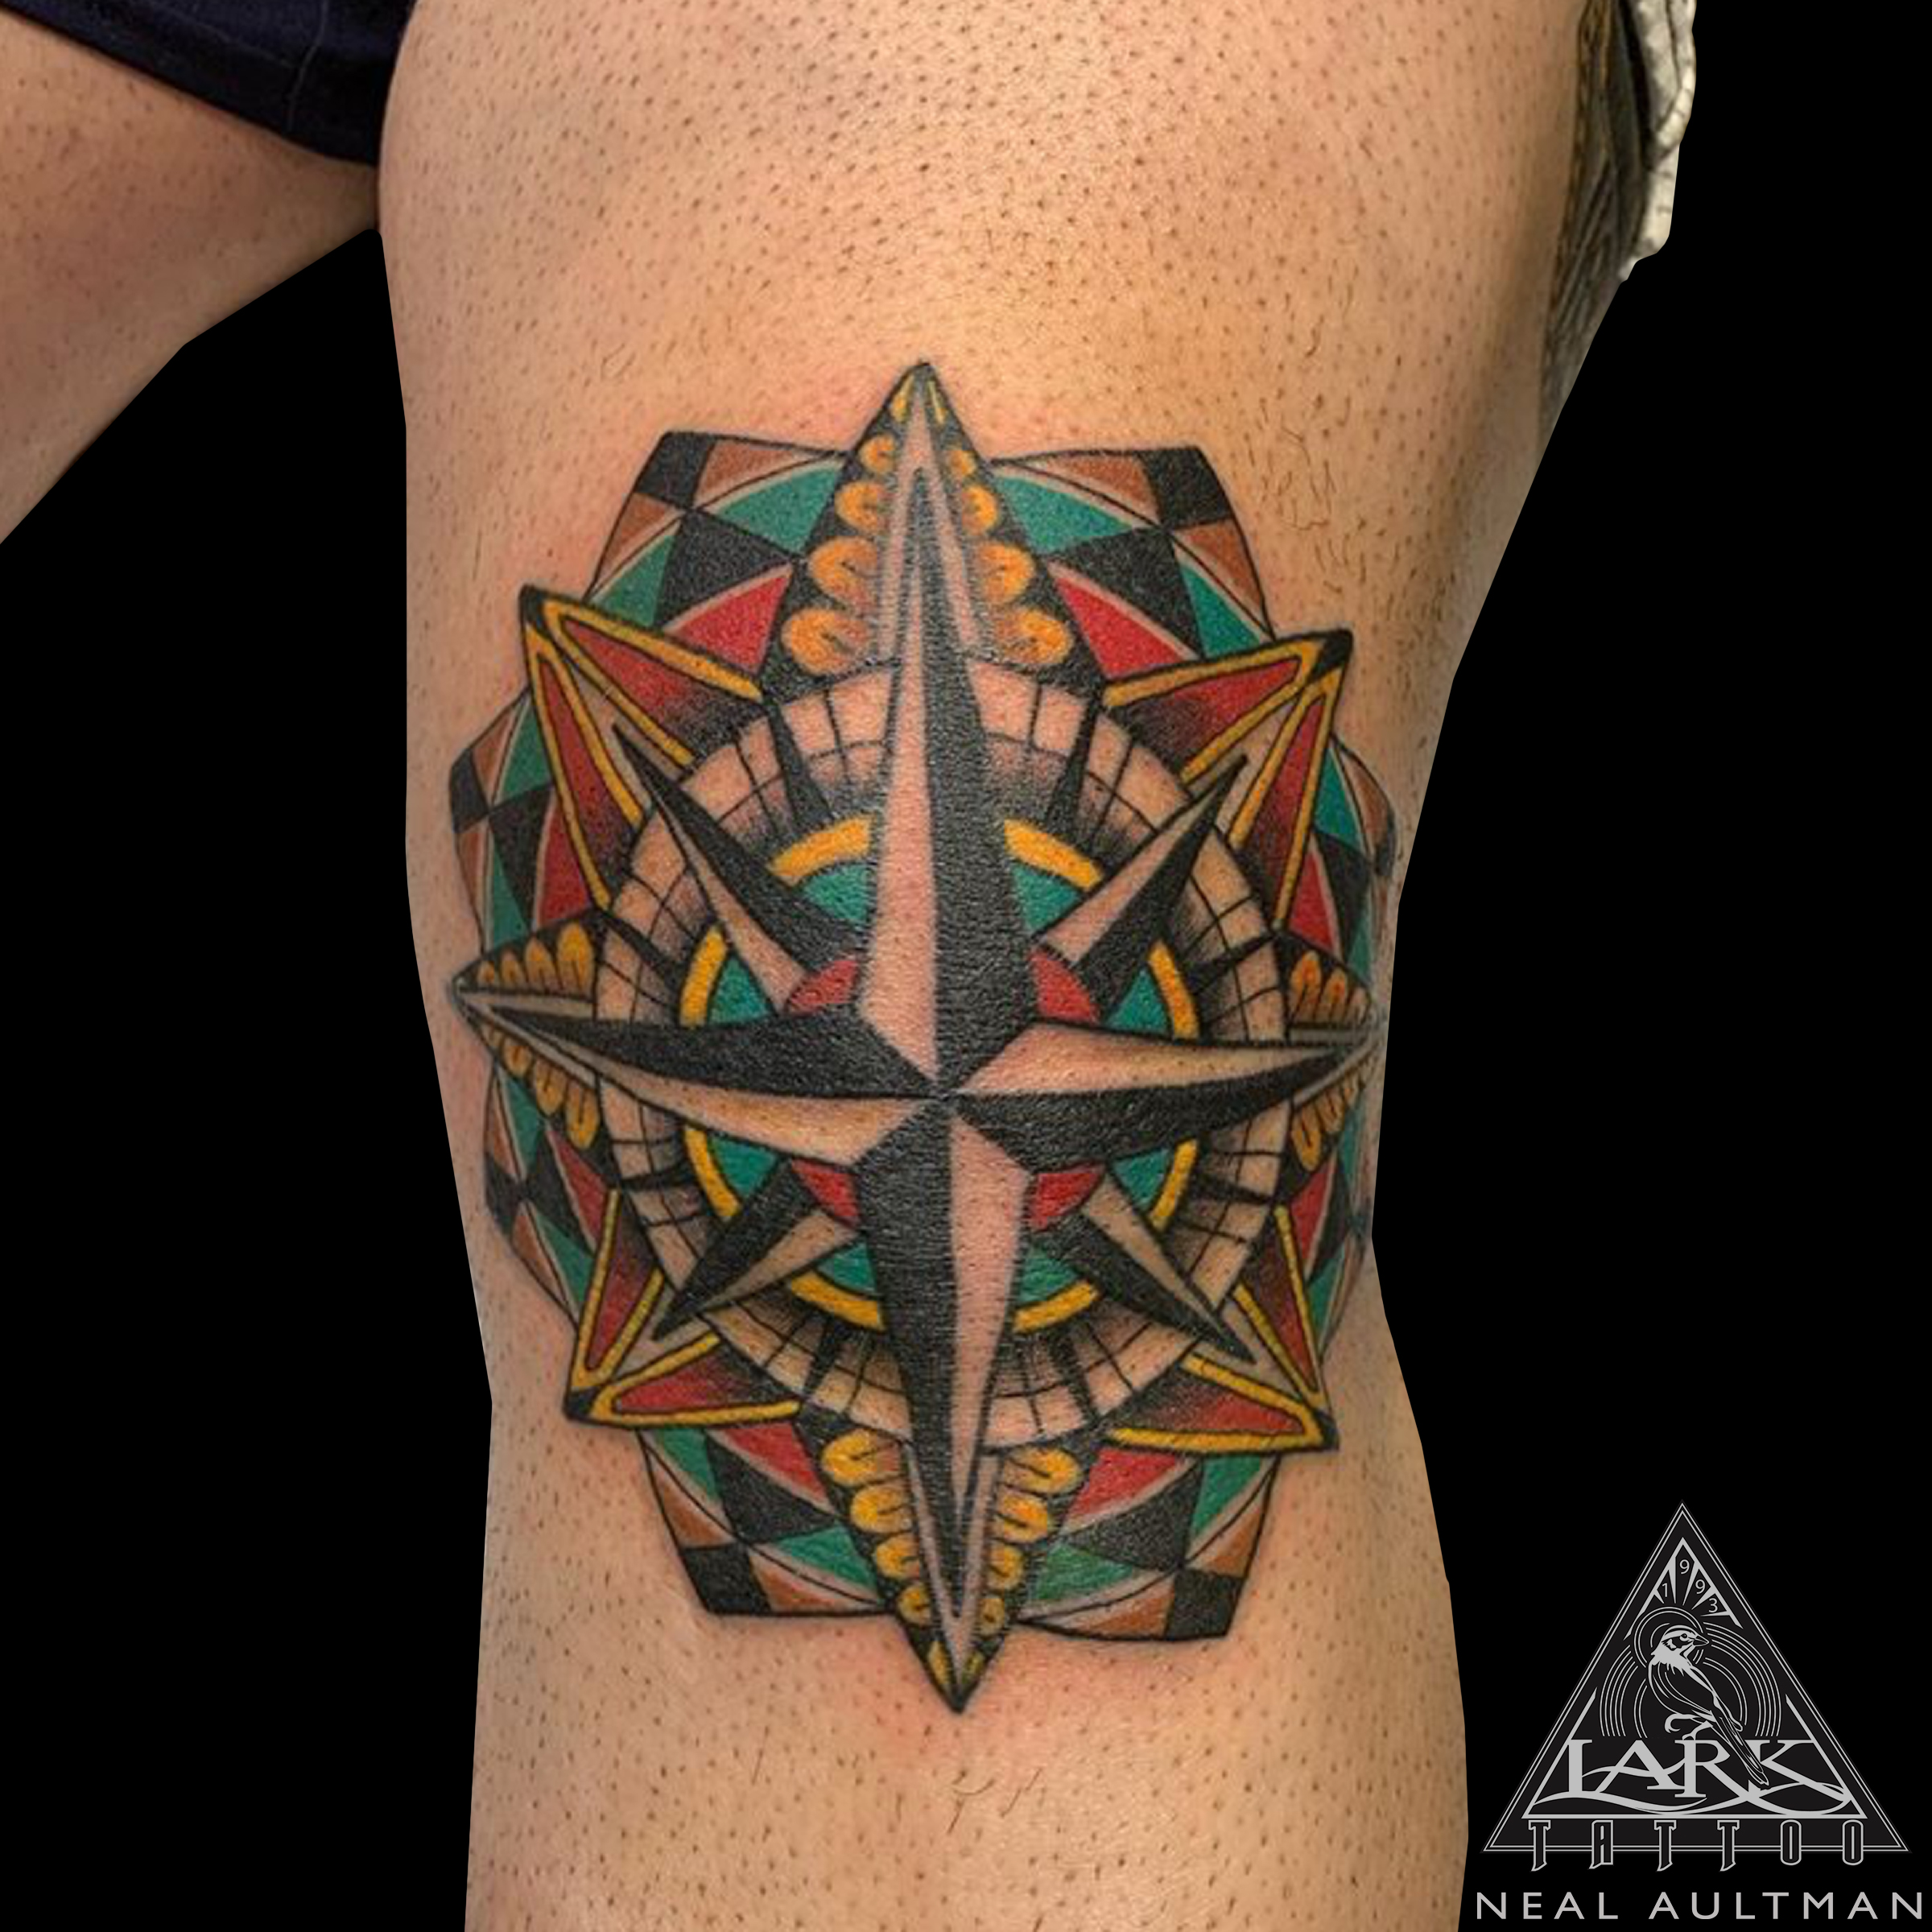 LarkTattoo, NealAultman, ColorTattoo, Traditional, TraditionalTattoo, TraditionalColorTattoo, Knee, KneeTattoo, TraditionalKneeTattoo, CompassRose, CompassRoseTattoo, Nautical, NauticalTattoo, TraditionalCompassRoseTattoo, TattooOnKnee, TraditionalTattooArtist, TraditionalTattooer, AmericanTraditional, AmericanTraditionalTattoo, AmericanTraditionalTattooer, AmericanTraditionalArtist , Tattoo, Tattoos , TattooArtist, Tattoist, Tattooer, LongIslandTattooArtist, LongIslandTattooer, LongIslandTattoo, TattooOfTheDay, Tat, Tats, Tatts, Tatted, Inked, Ink, TattooInk, AmazingInk, AmazingTattoo, BodyArt, LarkTattooWestbury, Westbury, LongIsland, NY, NewYork, USA, Art, Tattedup, InkedUp, LarkTattoos